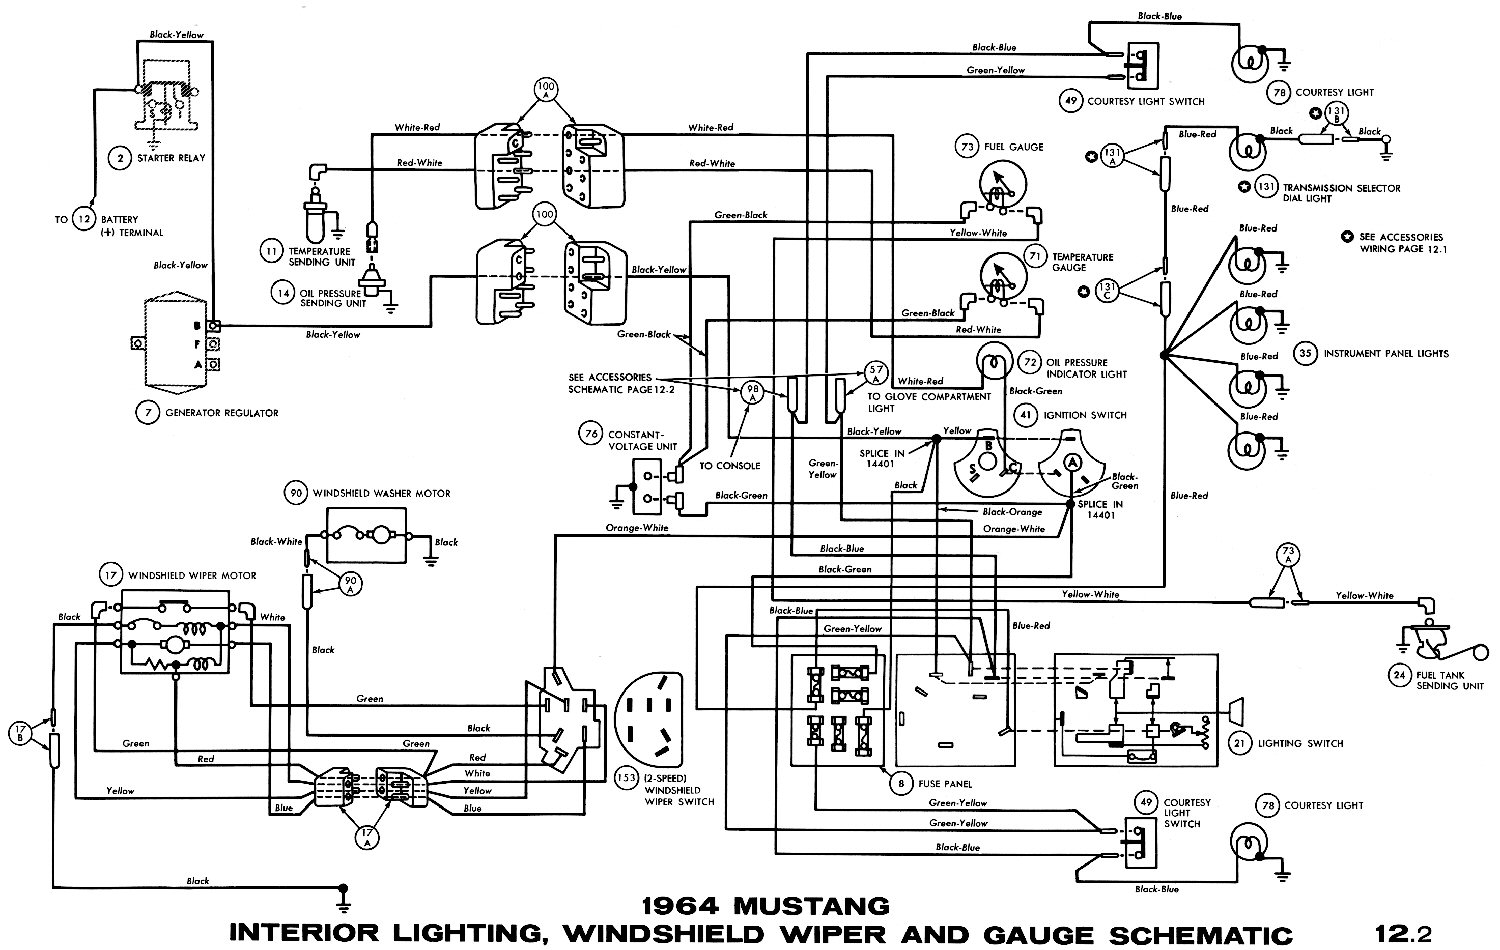 1964 ford mustang headlight wiring diagram schematics wiring rh  seniorlivinguniversity co 1988 Ford Mustang Wiring Diagram Ford Electronic  Ignition Wiring ...